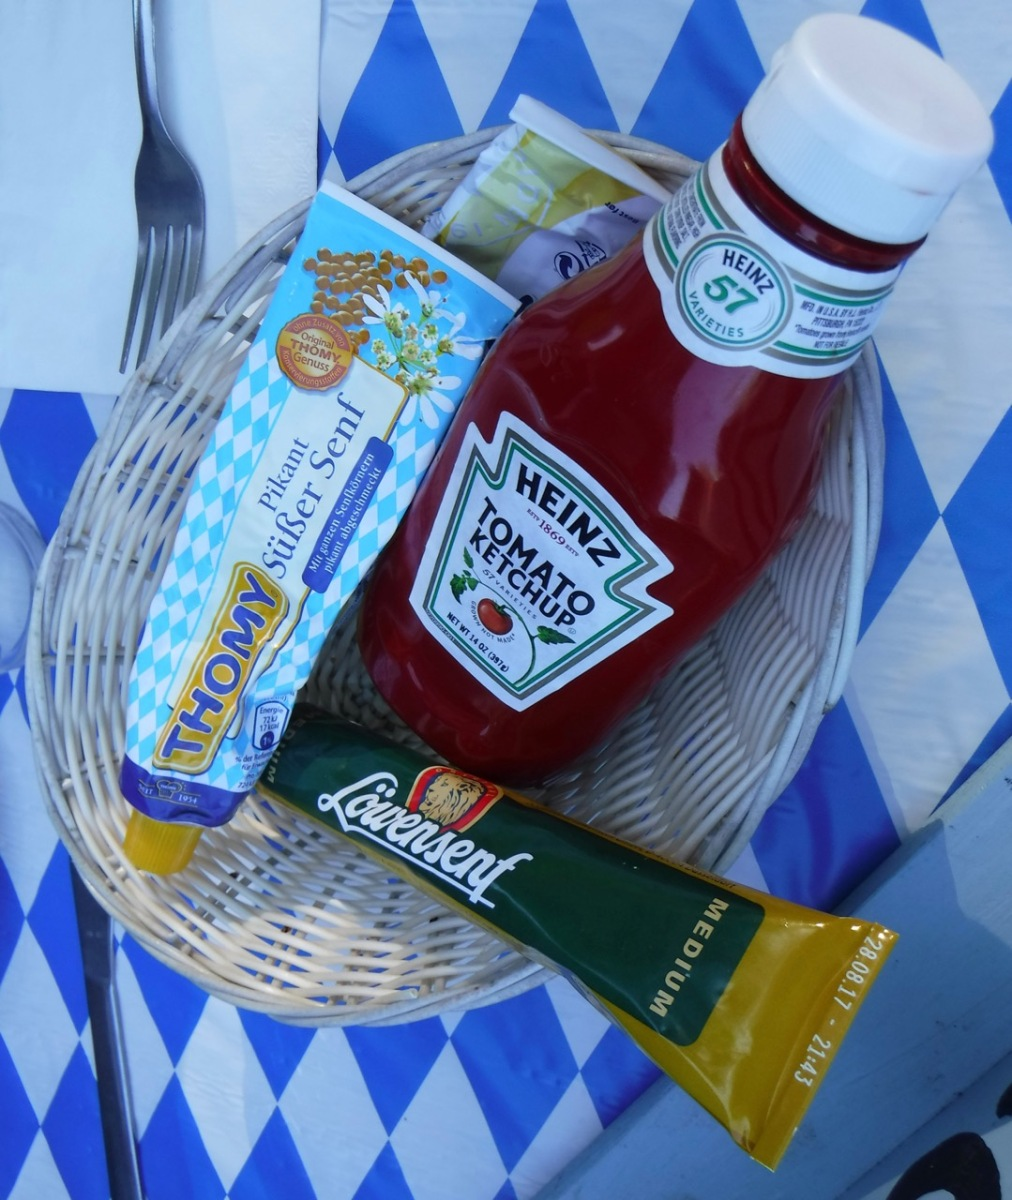 CLV Waldsee food condiments at Oktoberfest party